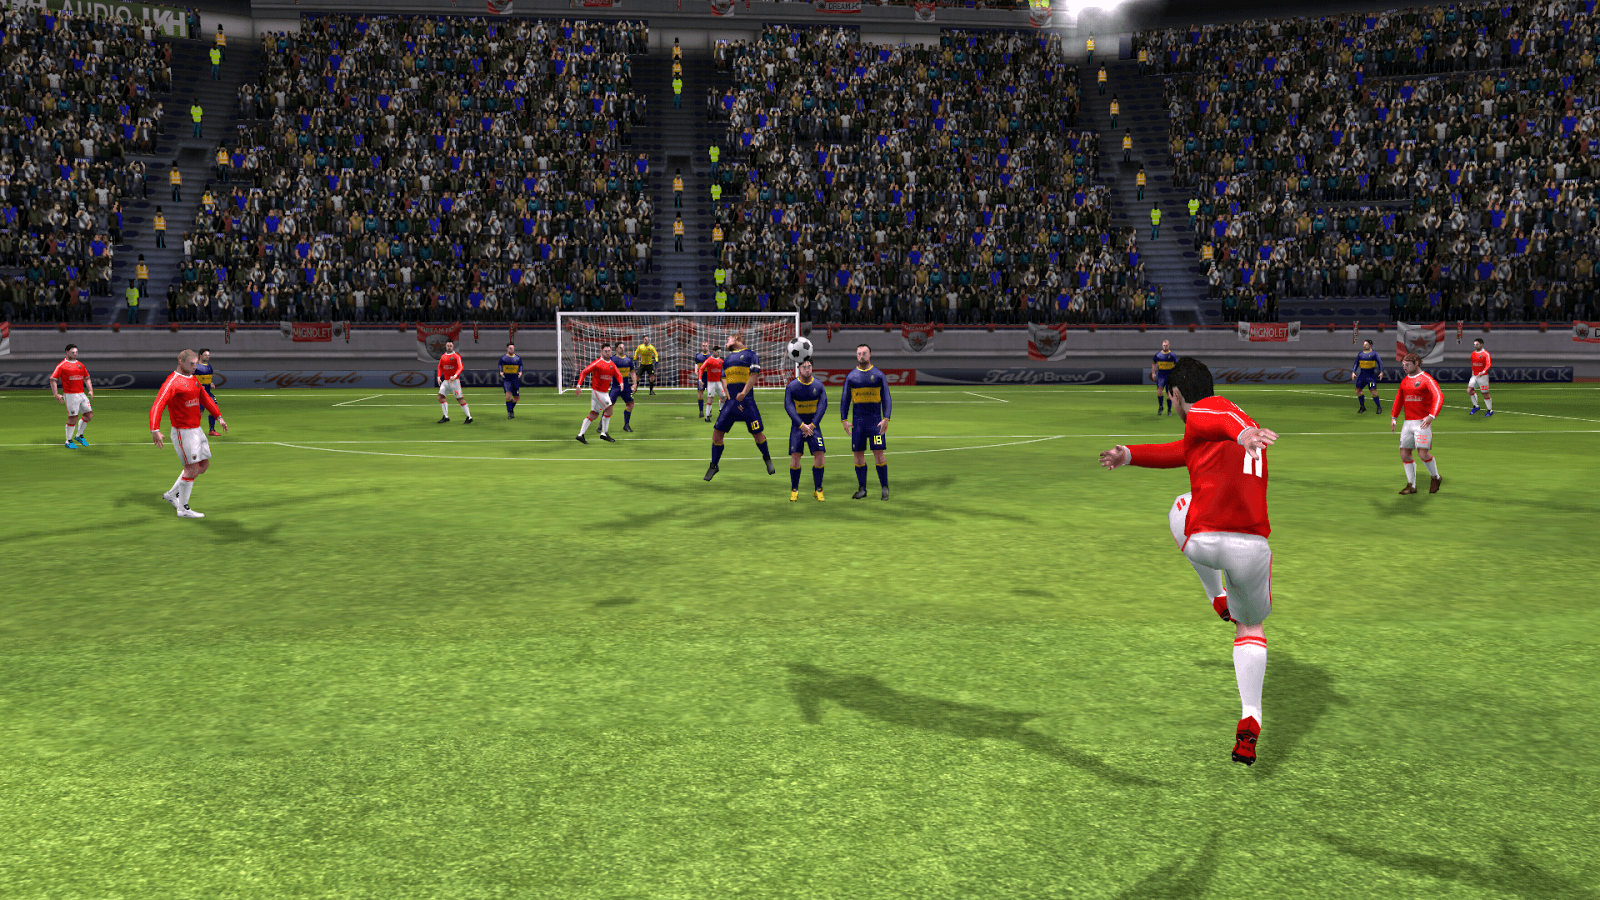 Download And Install Dream League Soccer APK +OBB